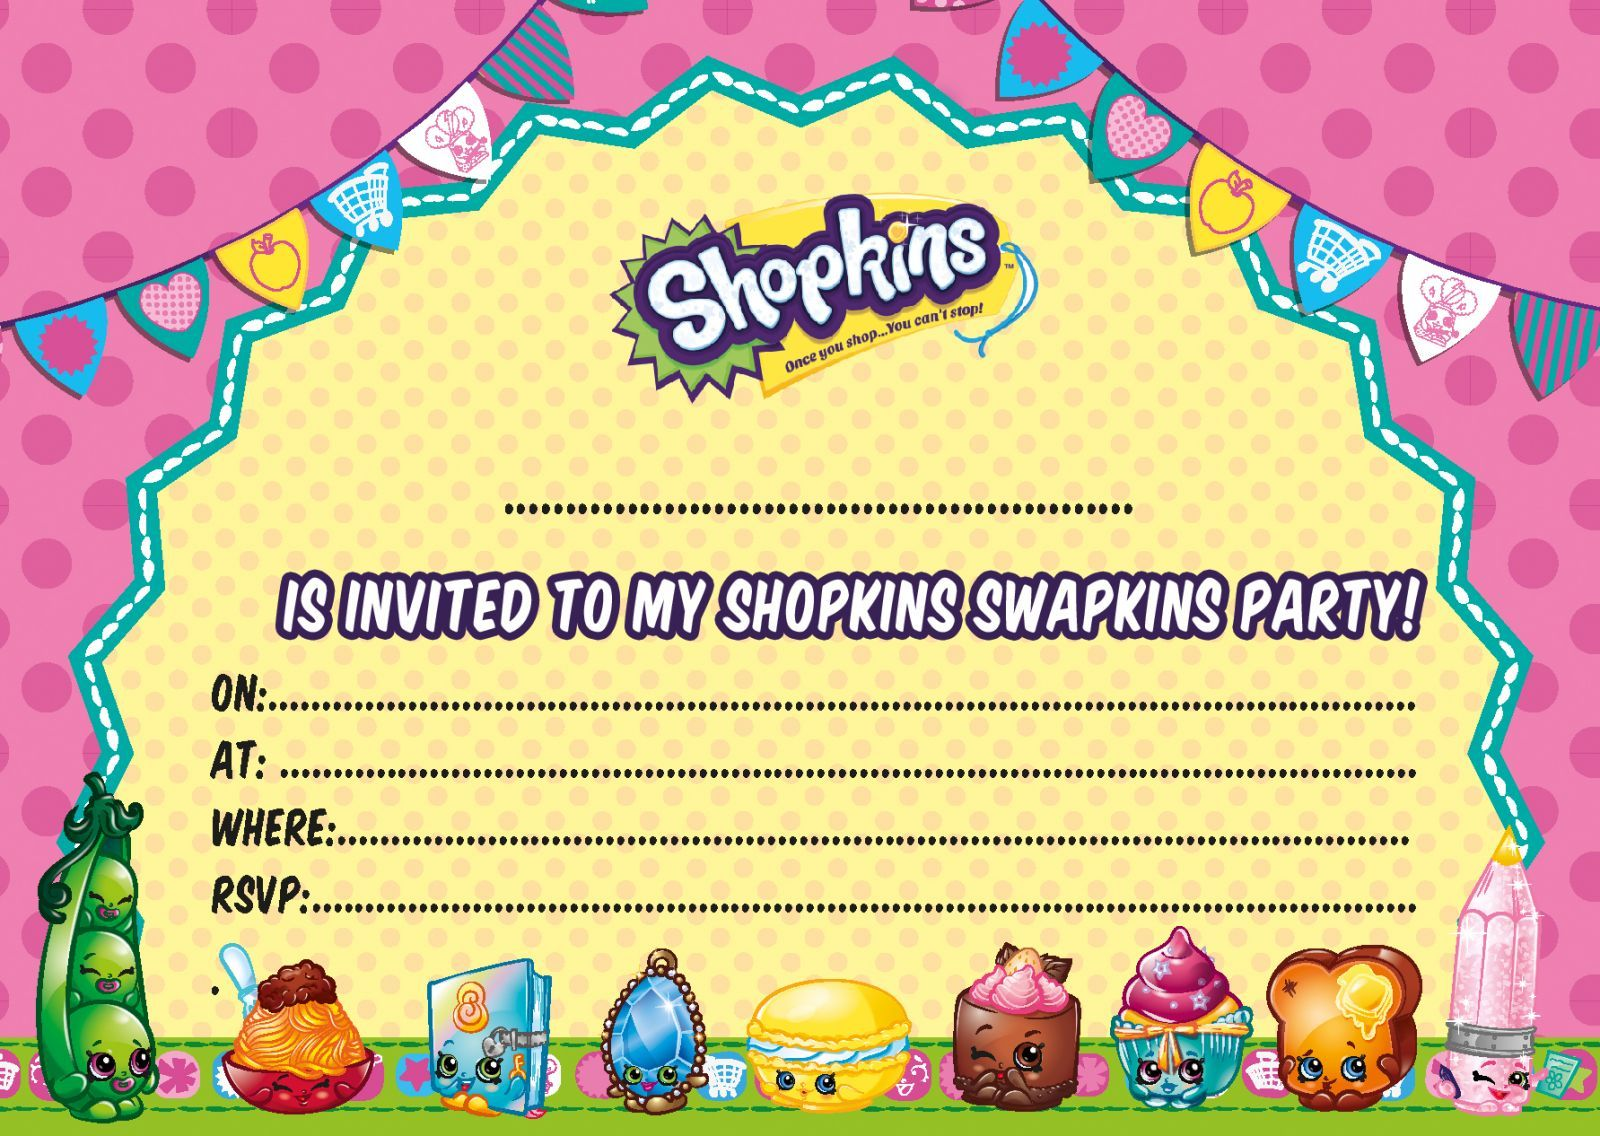 photo relating to Free Printable Shopkins Invitations called Up-to-date No cost Printable Shopkins Birthday Invitation